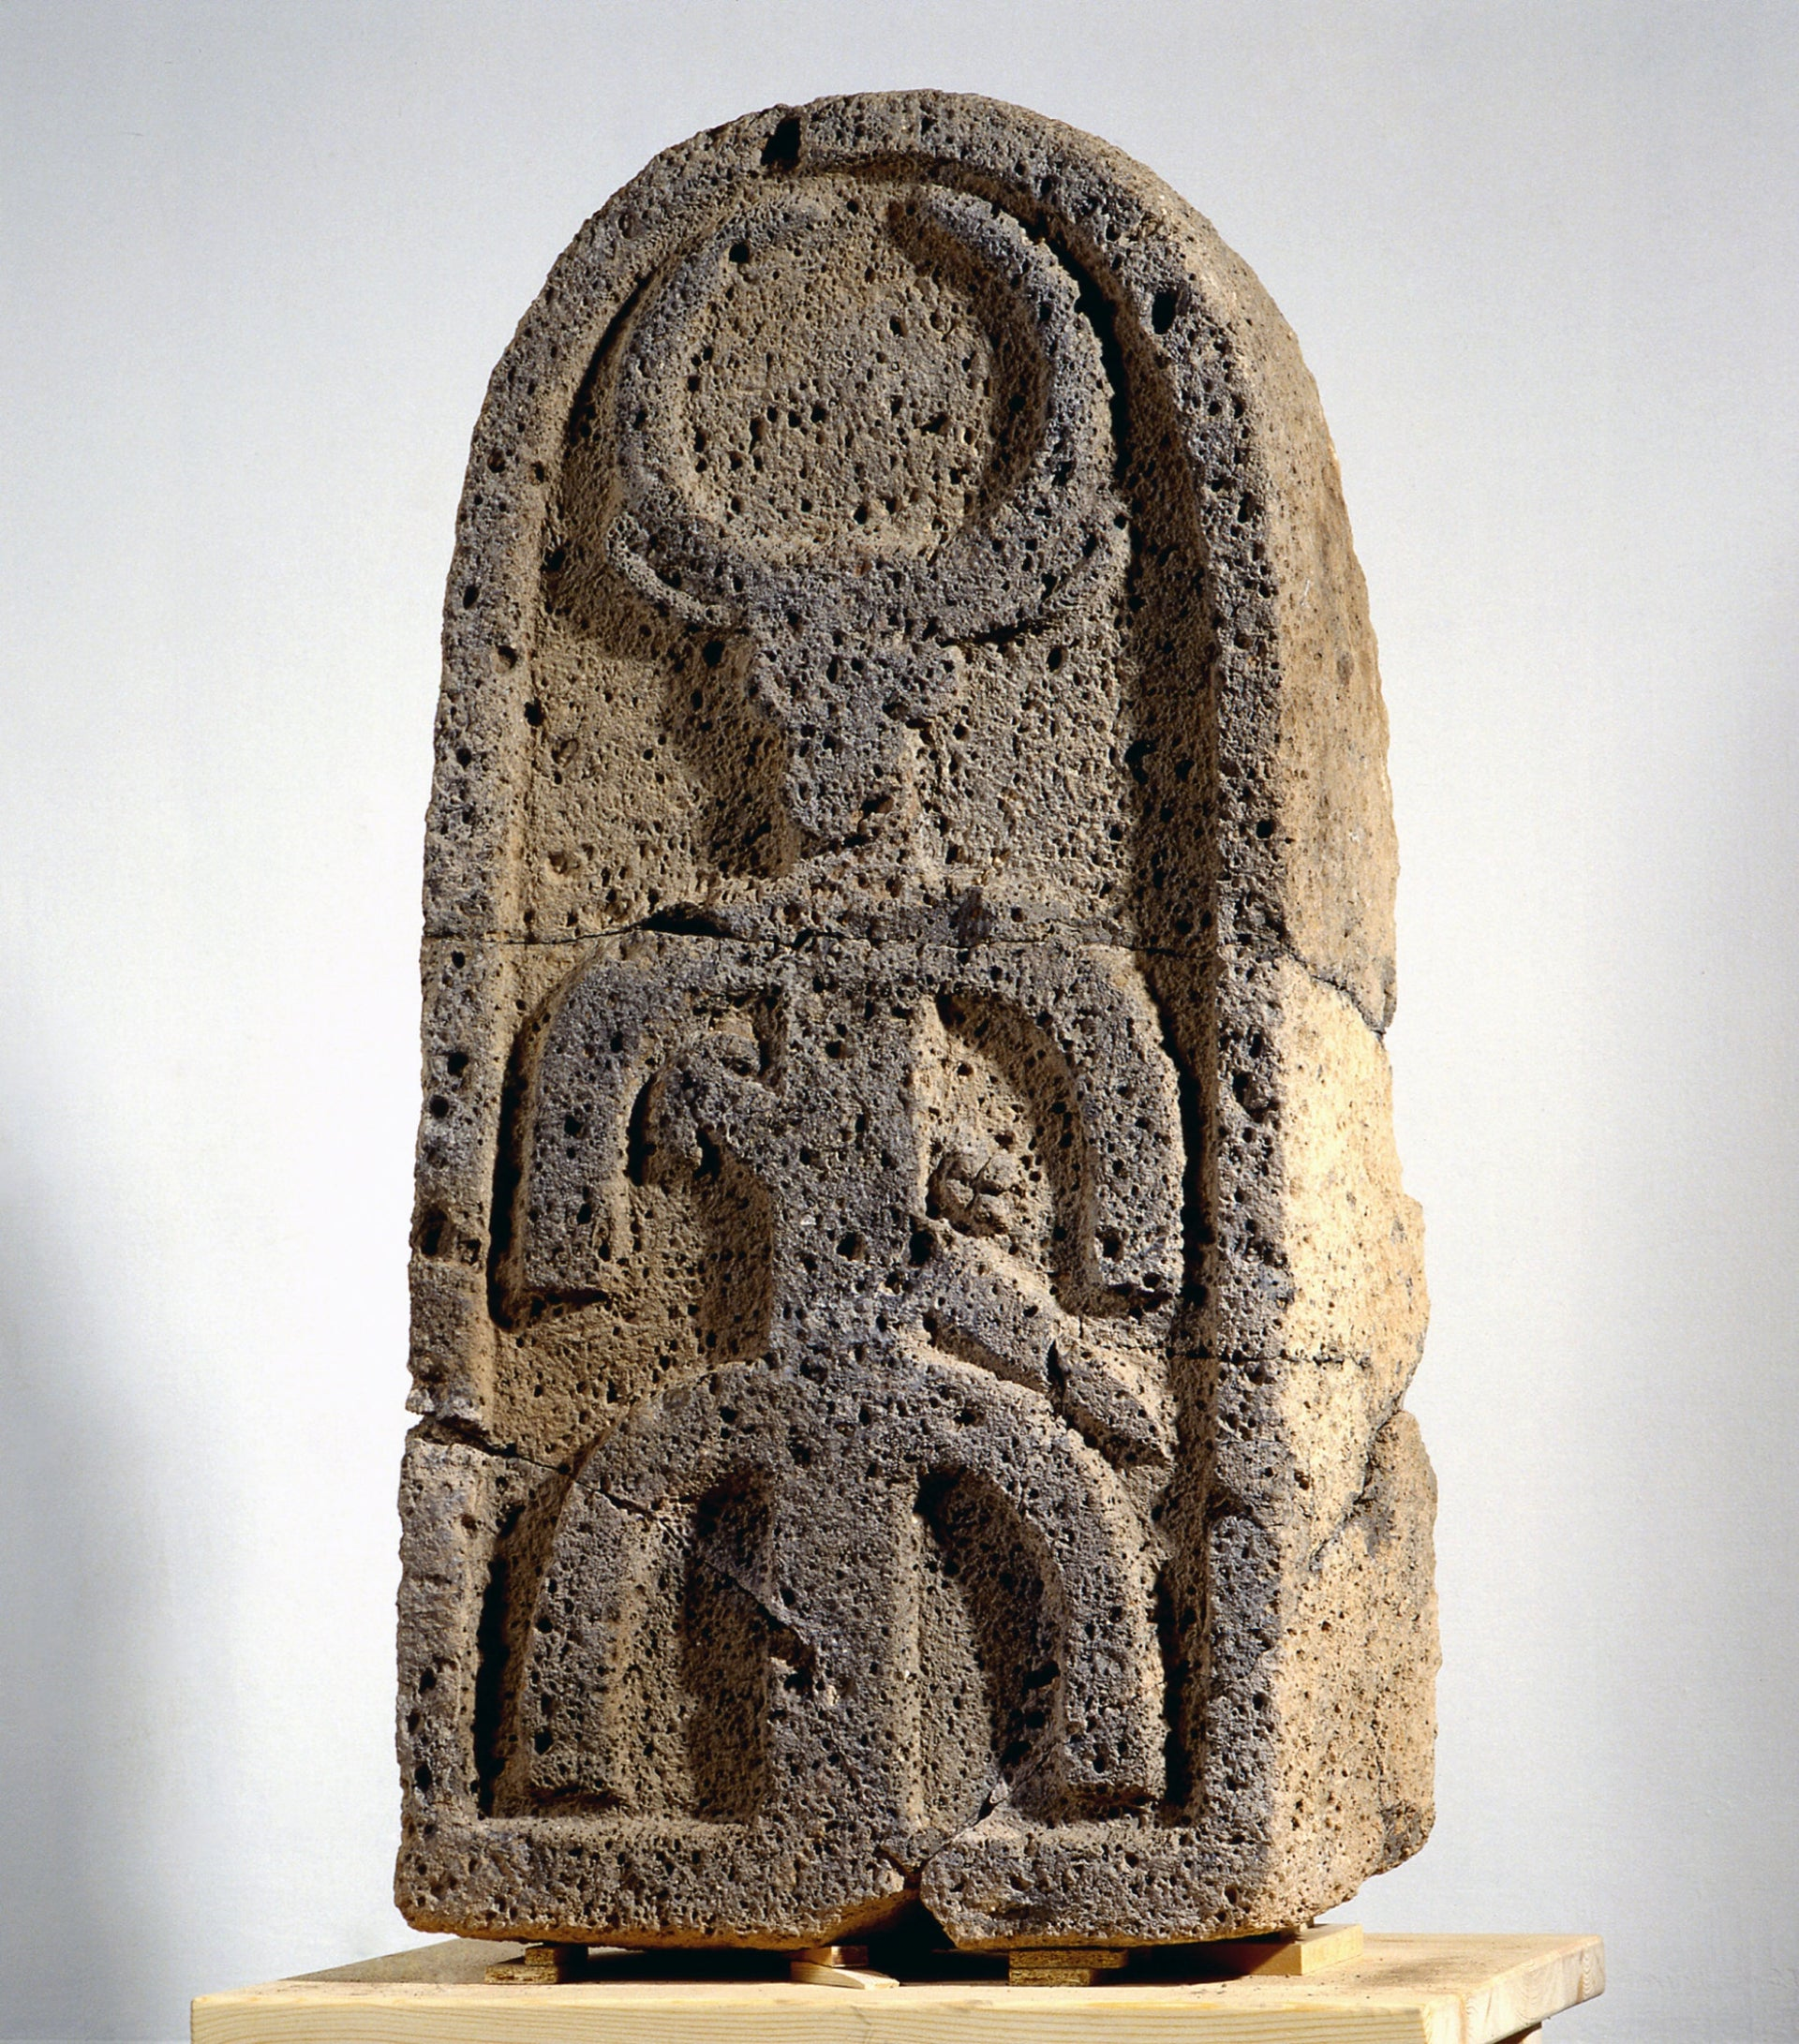 The moon god stele from the 9th-8th century B.C.E. found at e-Tell Bethsaida